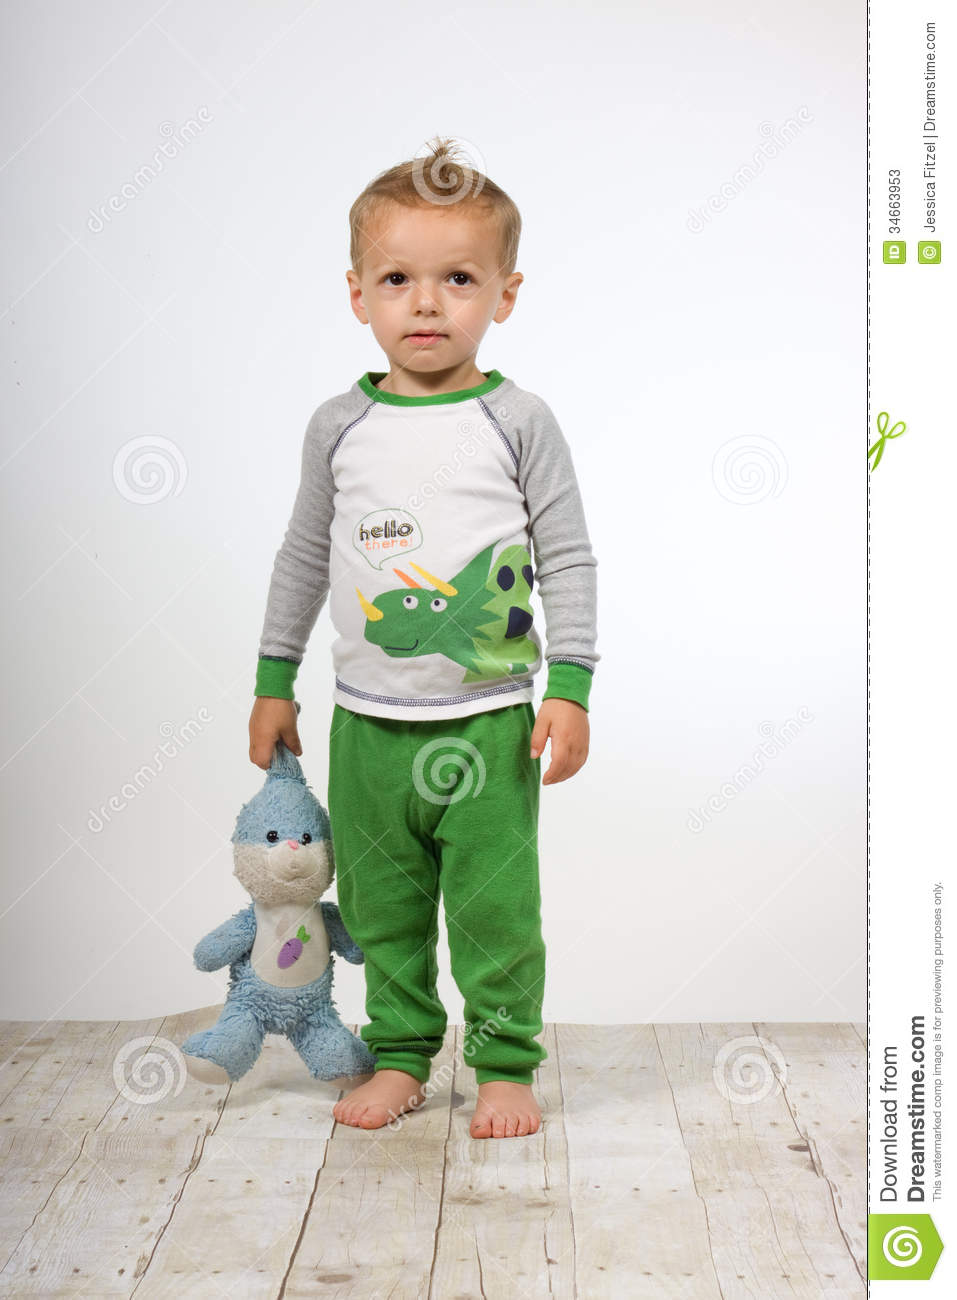 885c8568e Sad toddler boy in his pajamas and bare feet, holding his stuffed animal  security toy